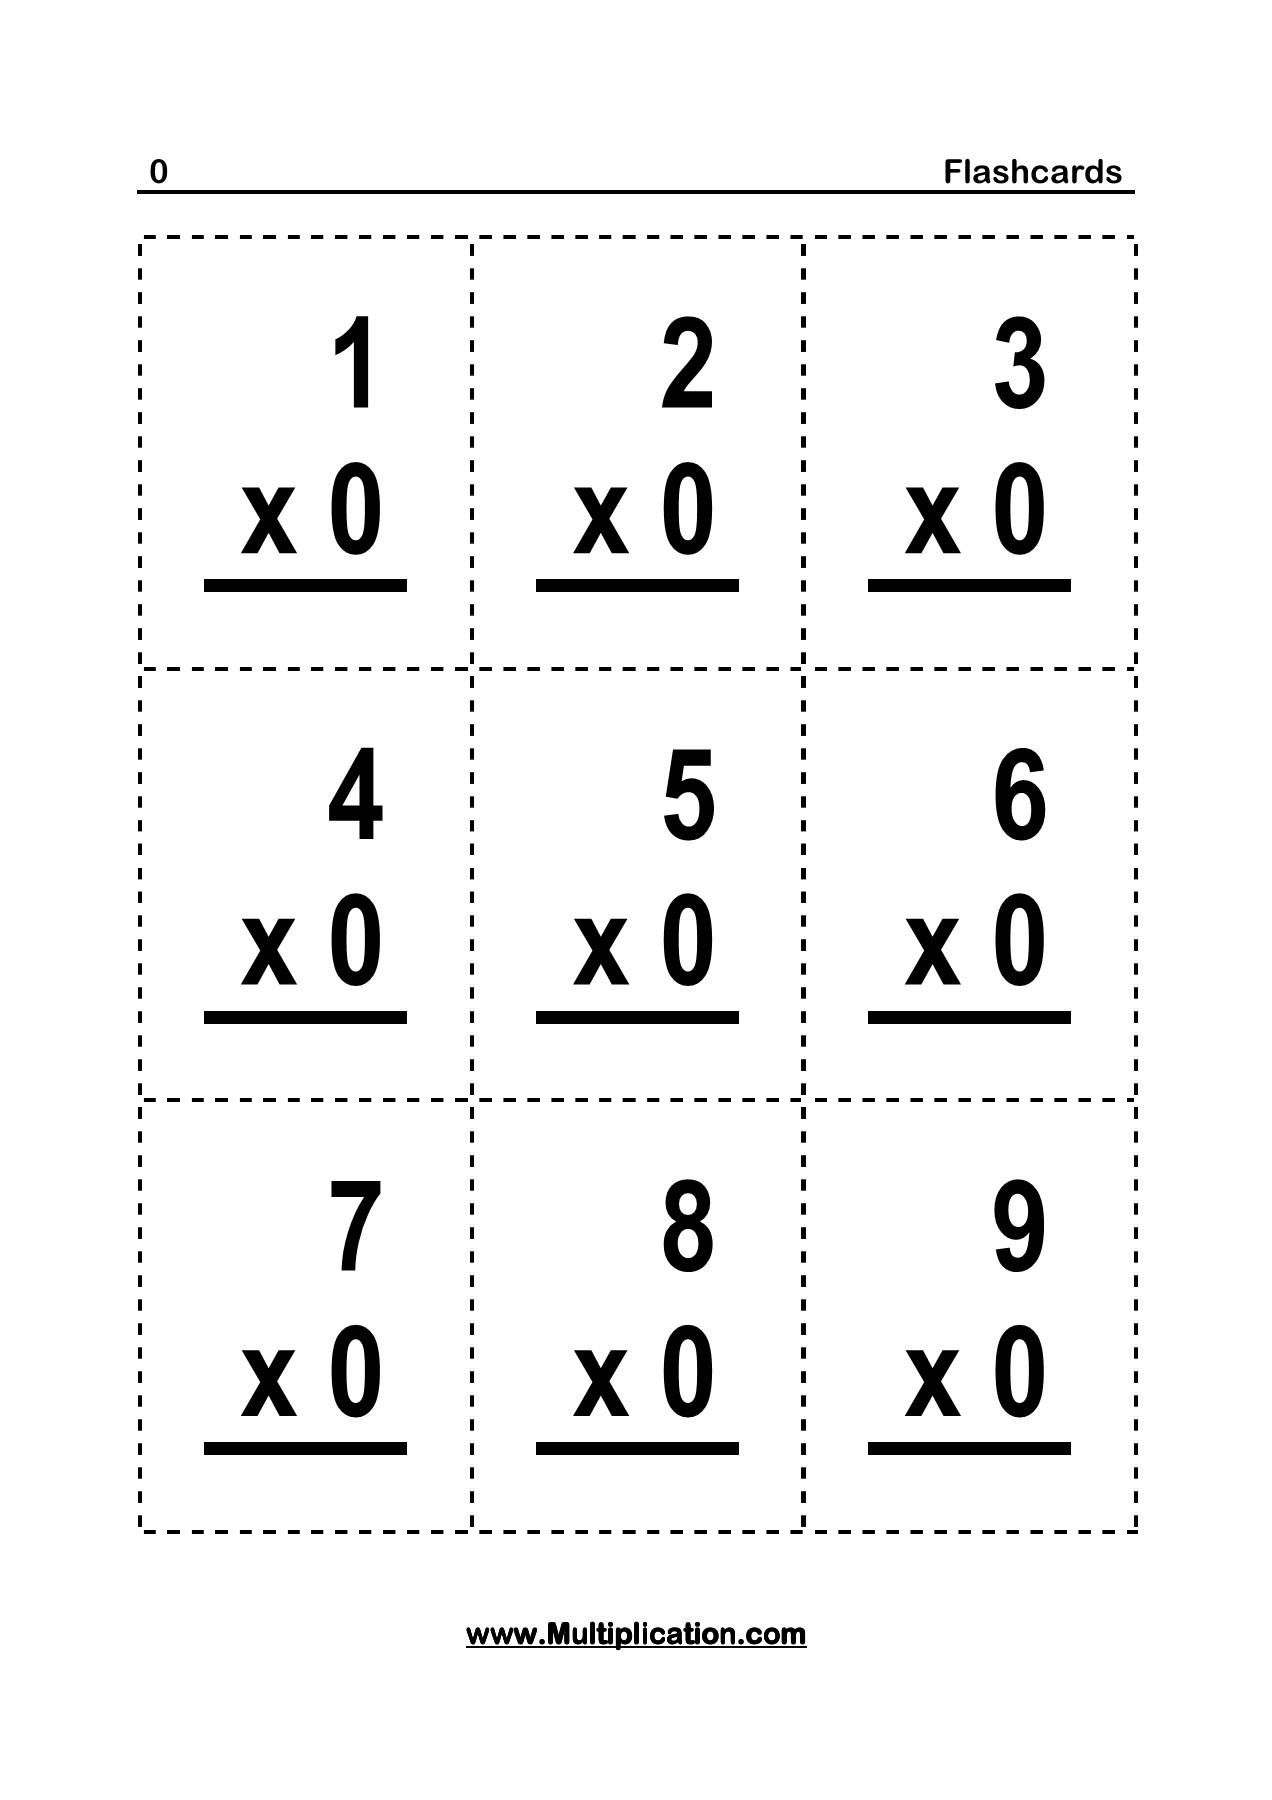 Flashcards - 0 - Multiplication